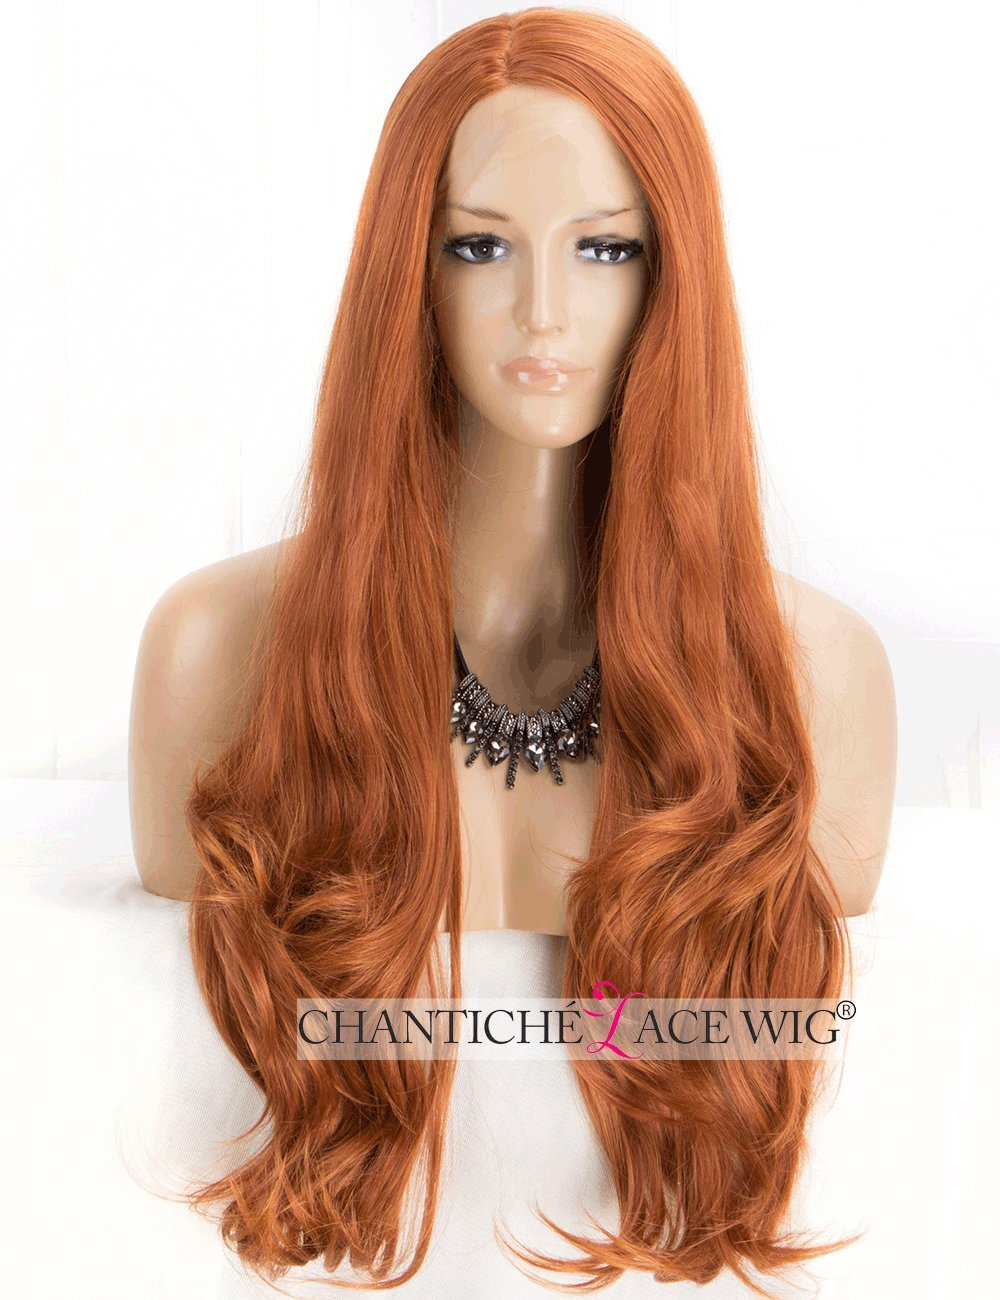 Chantiche Natural Looking Wavy Auburn perücken uk Copper Red Long kunsthaar Lace Front perrücke for Women Side Parting Heat Resistant Fiber 24 inches Chantiche Lace Wig